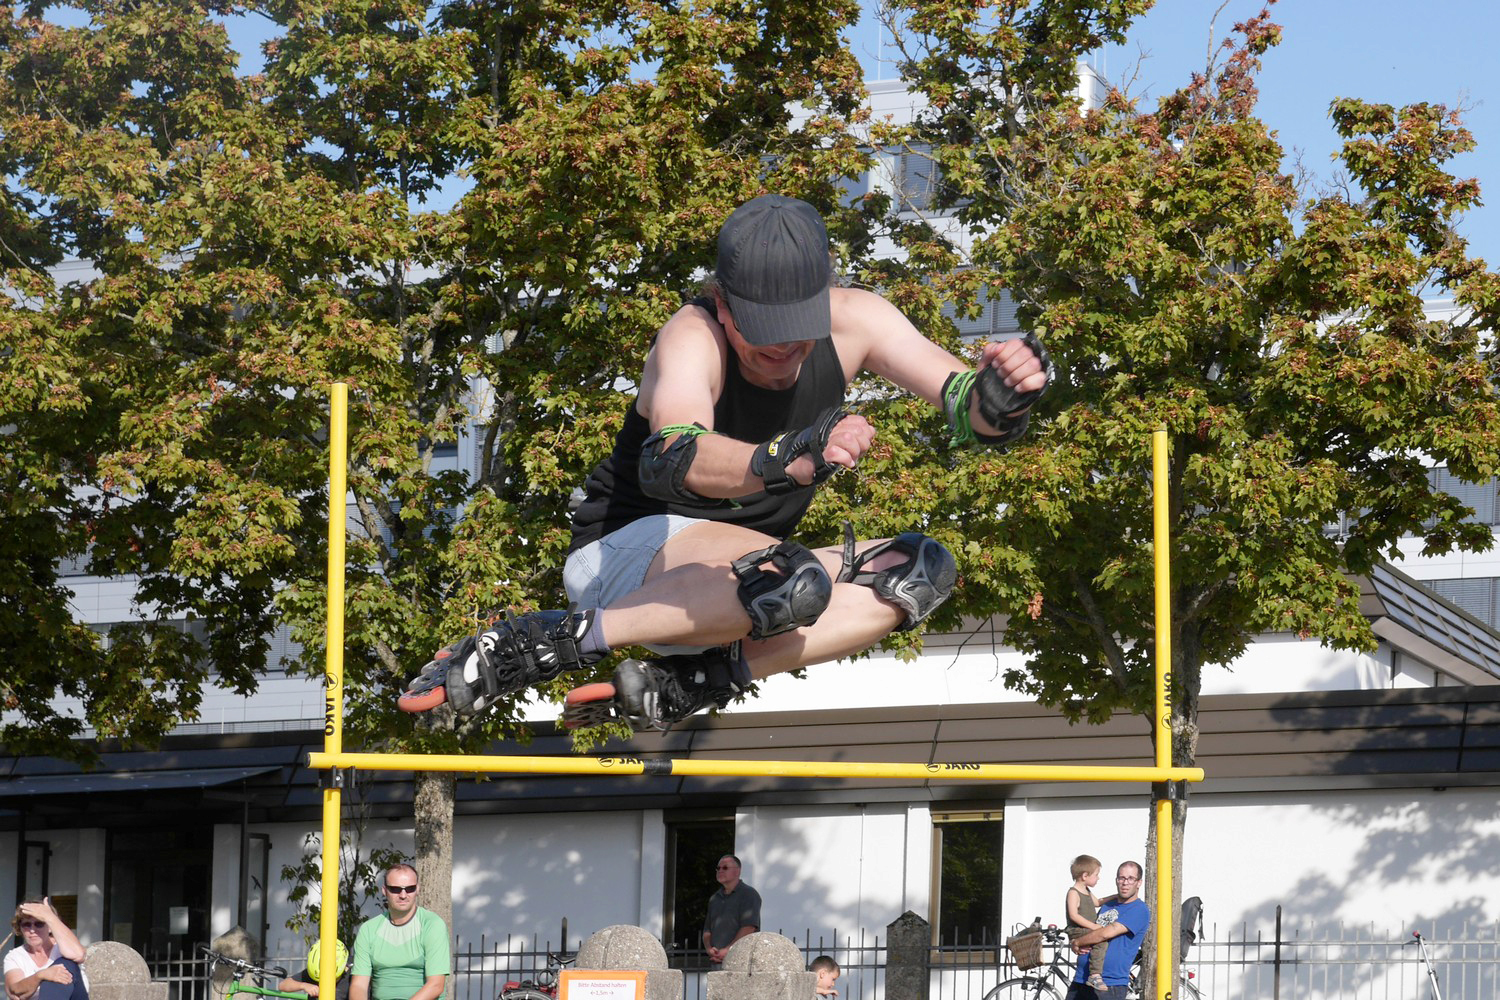 Free Jump beim BATTLE OF BADEN 2020 in Karlsruhe